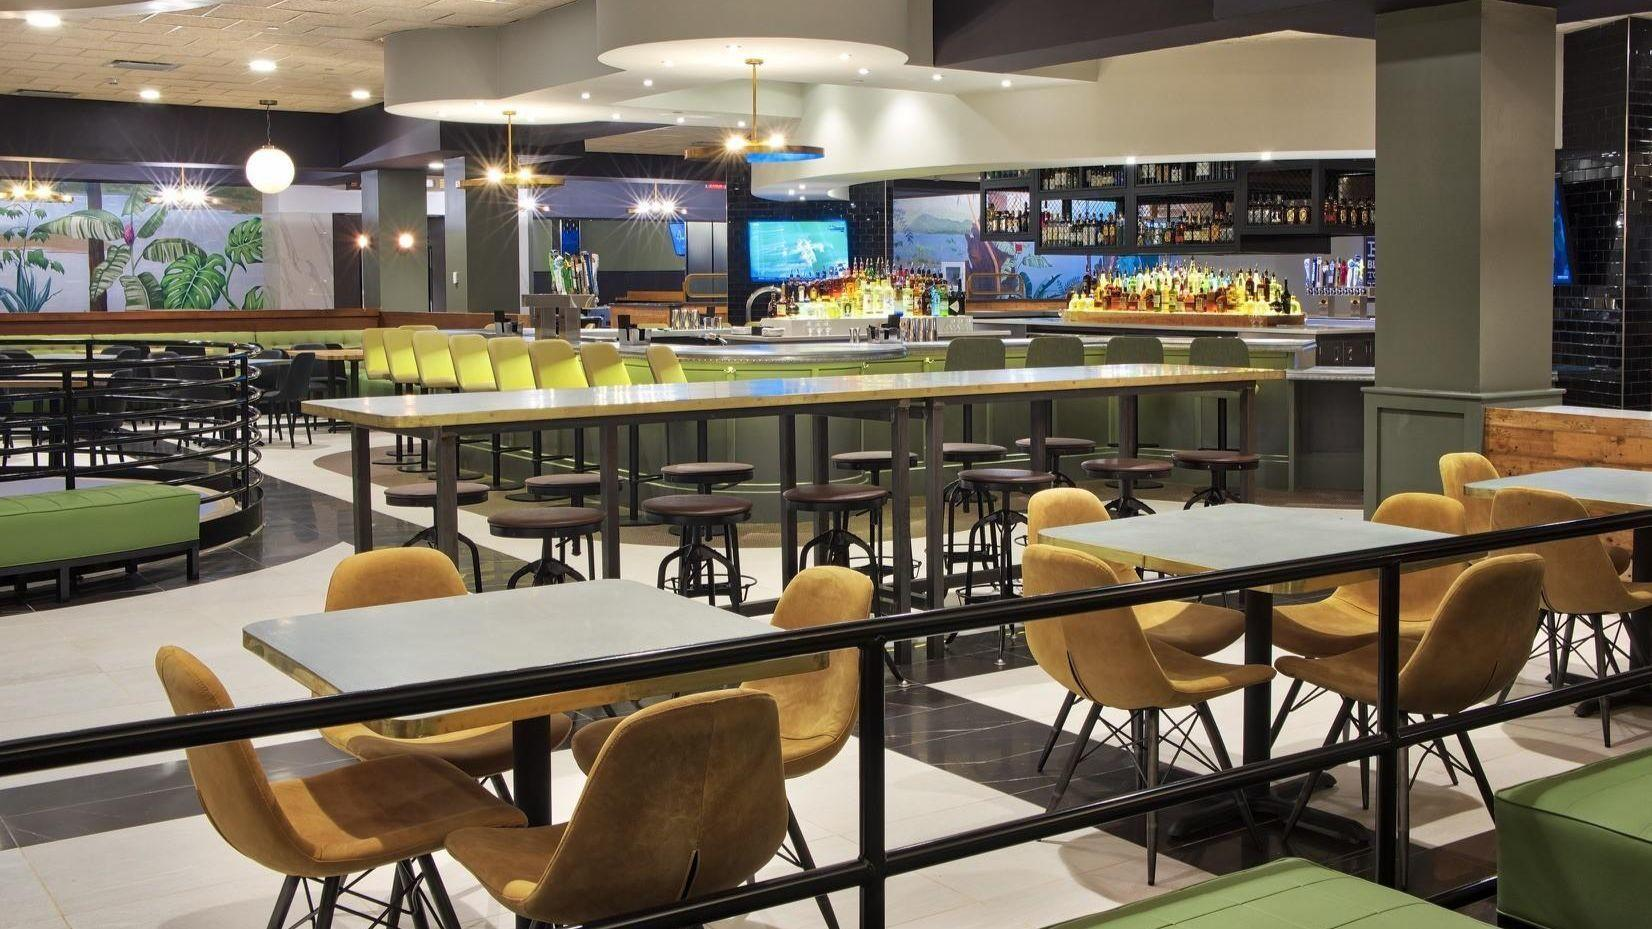 Boca S Cinemark Movie Theater Reopens Restaurant And Bar